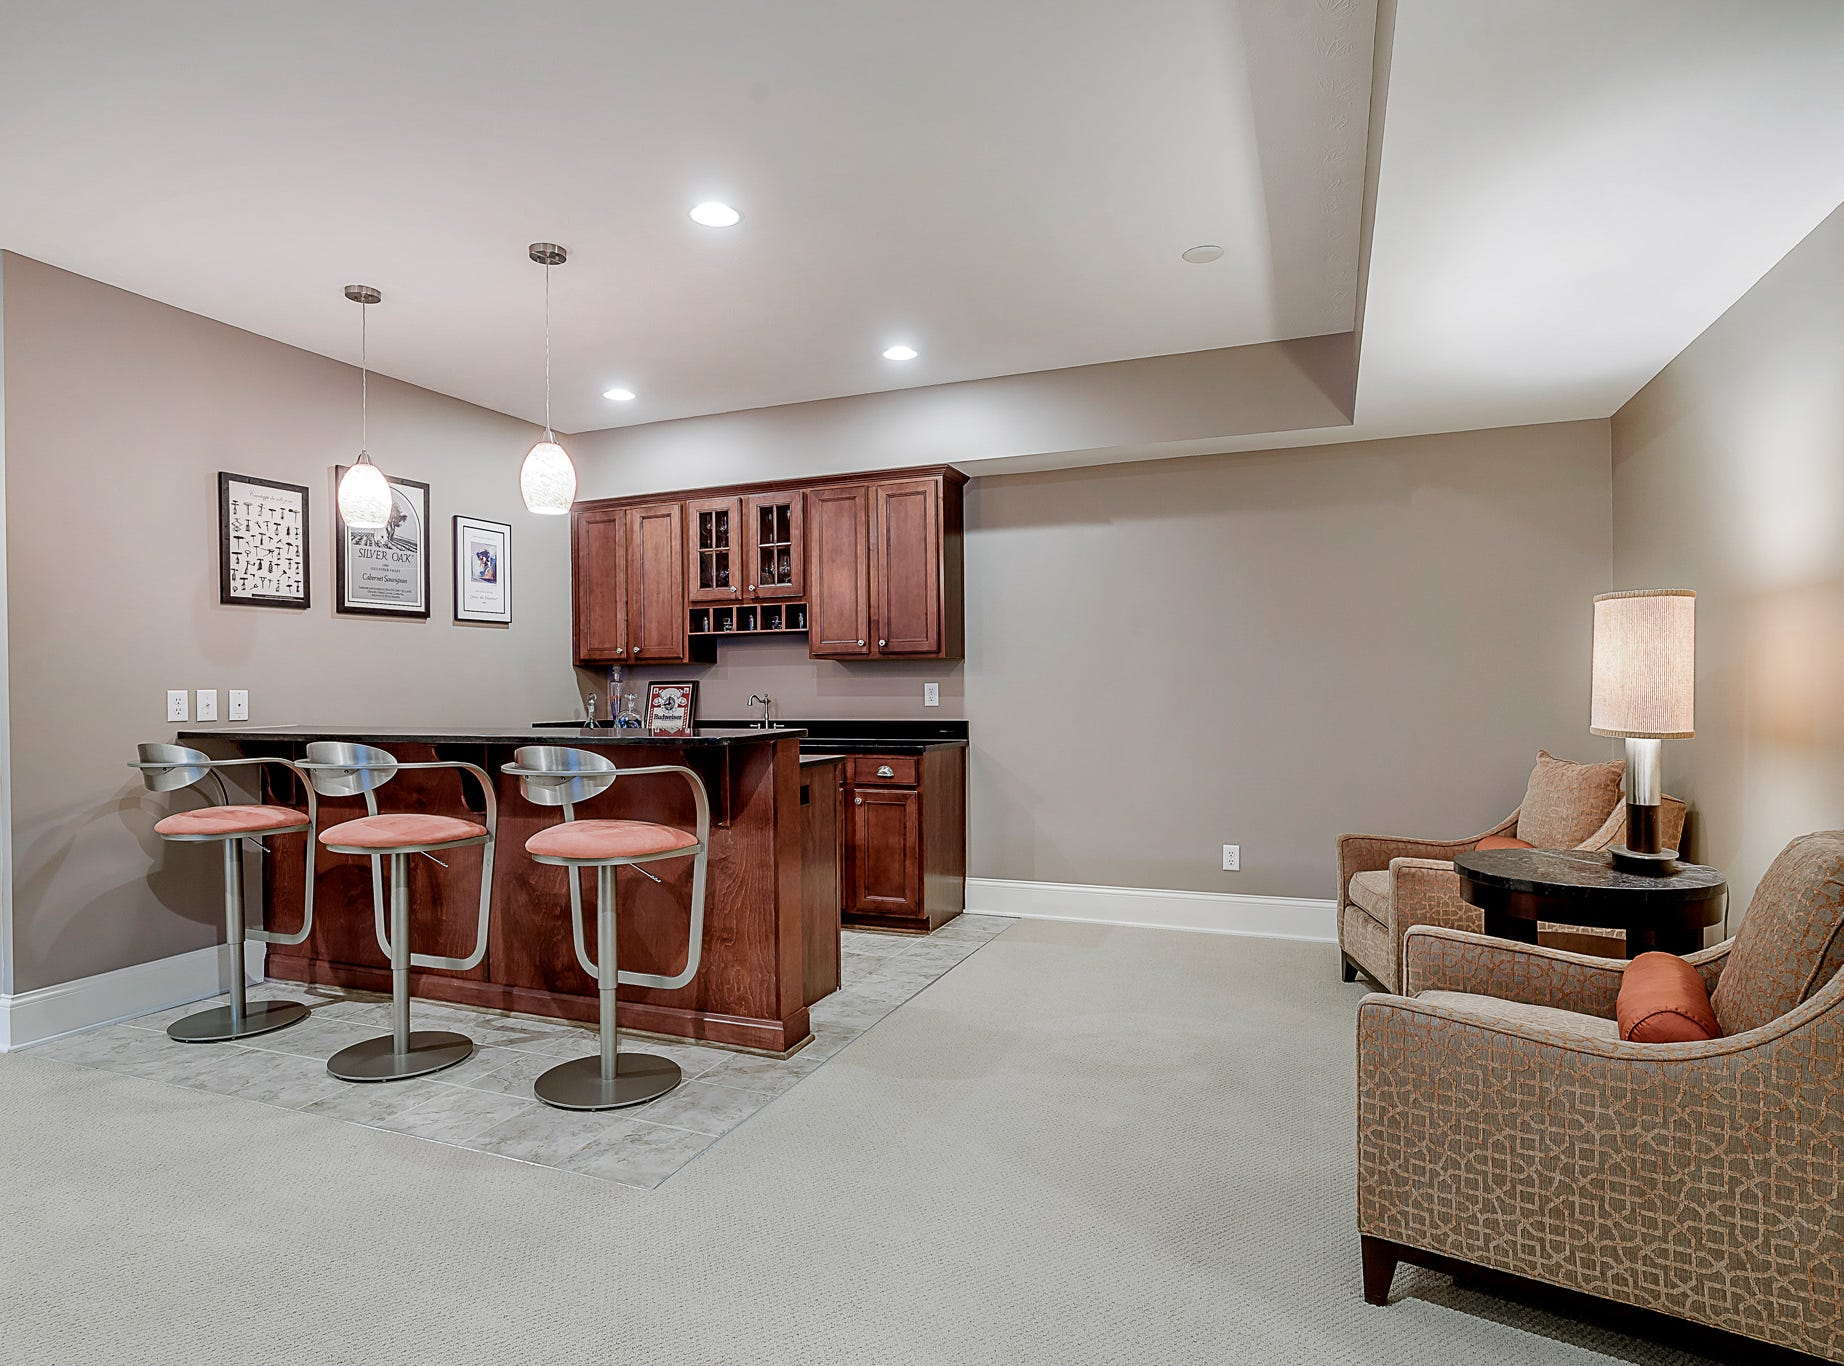 Finished basement and recreation room features a bar, a bedroom and a bathroom.